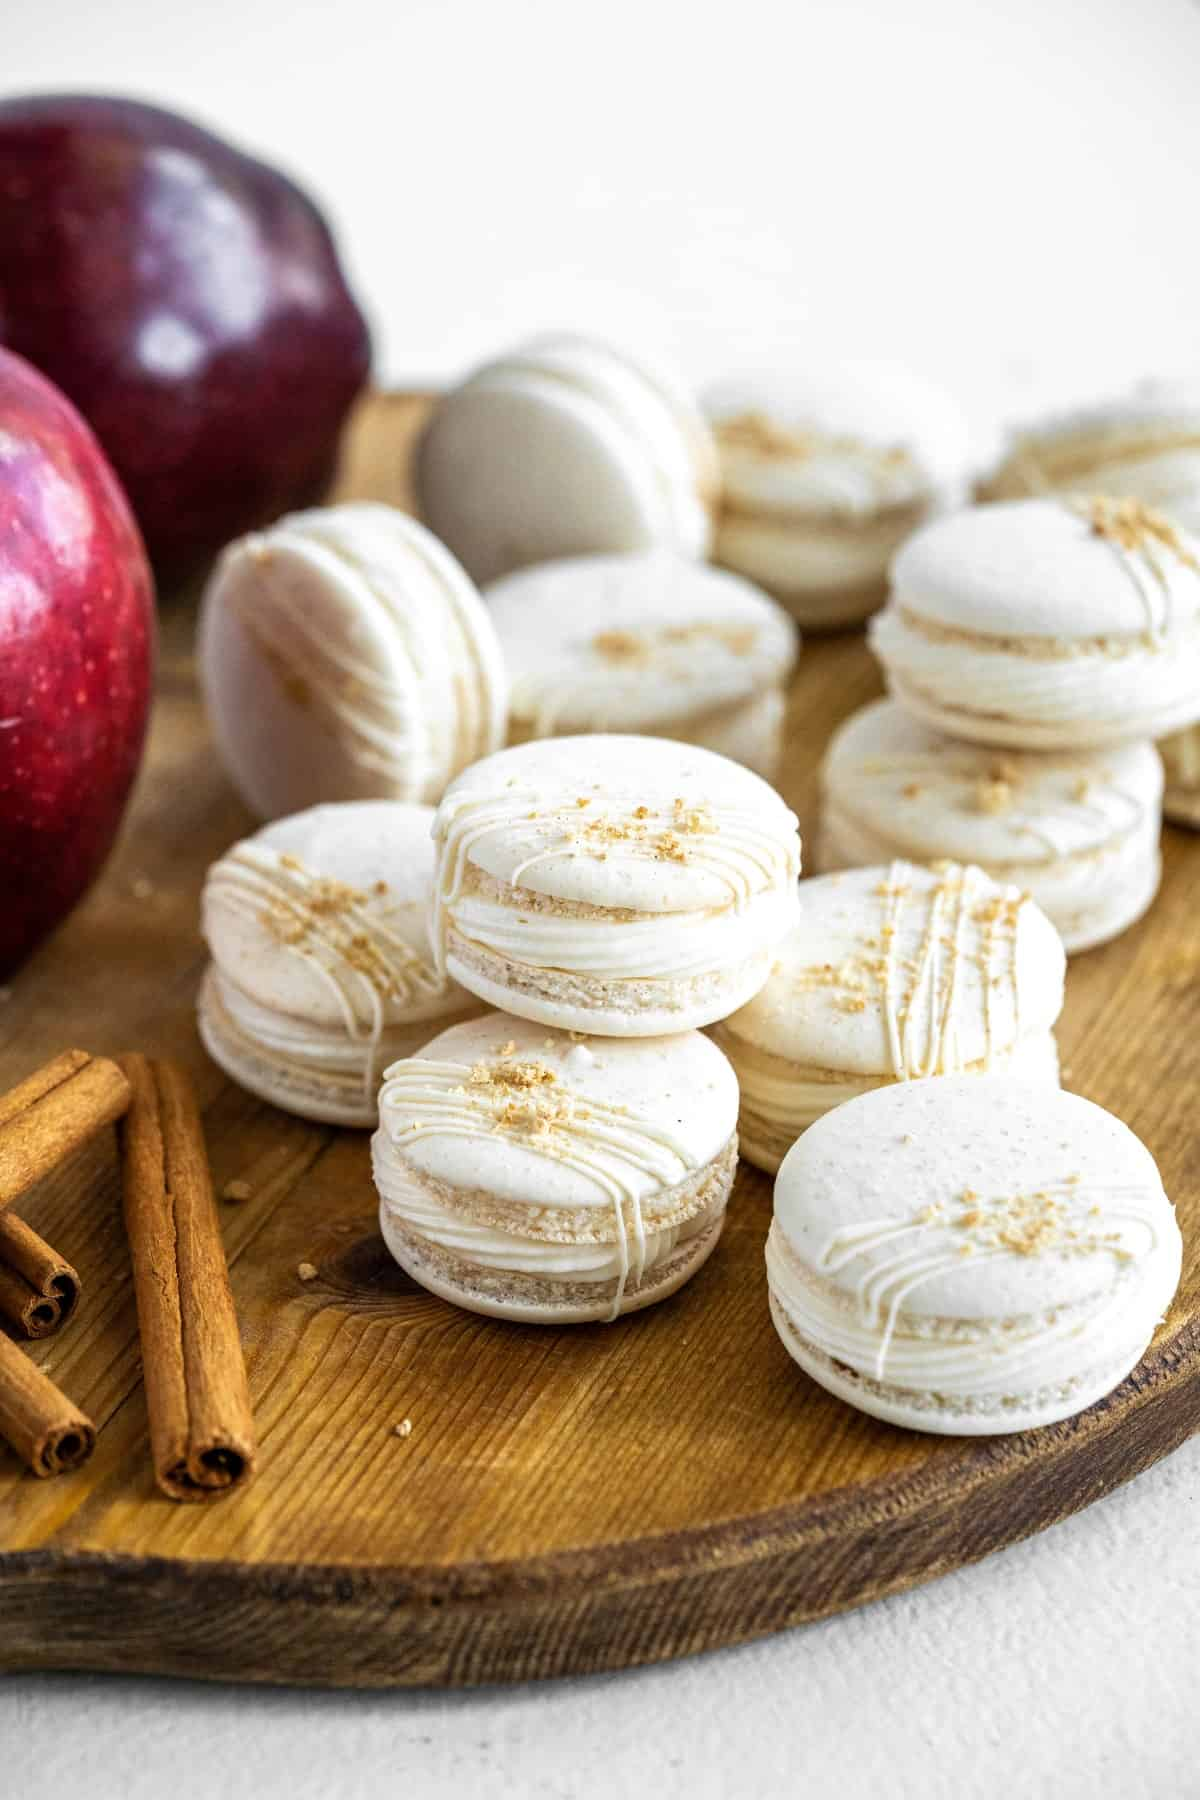 Macarons on a wooden board with apples and cinnamon sticks